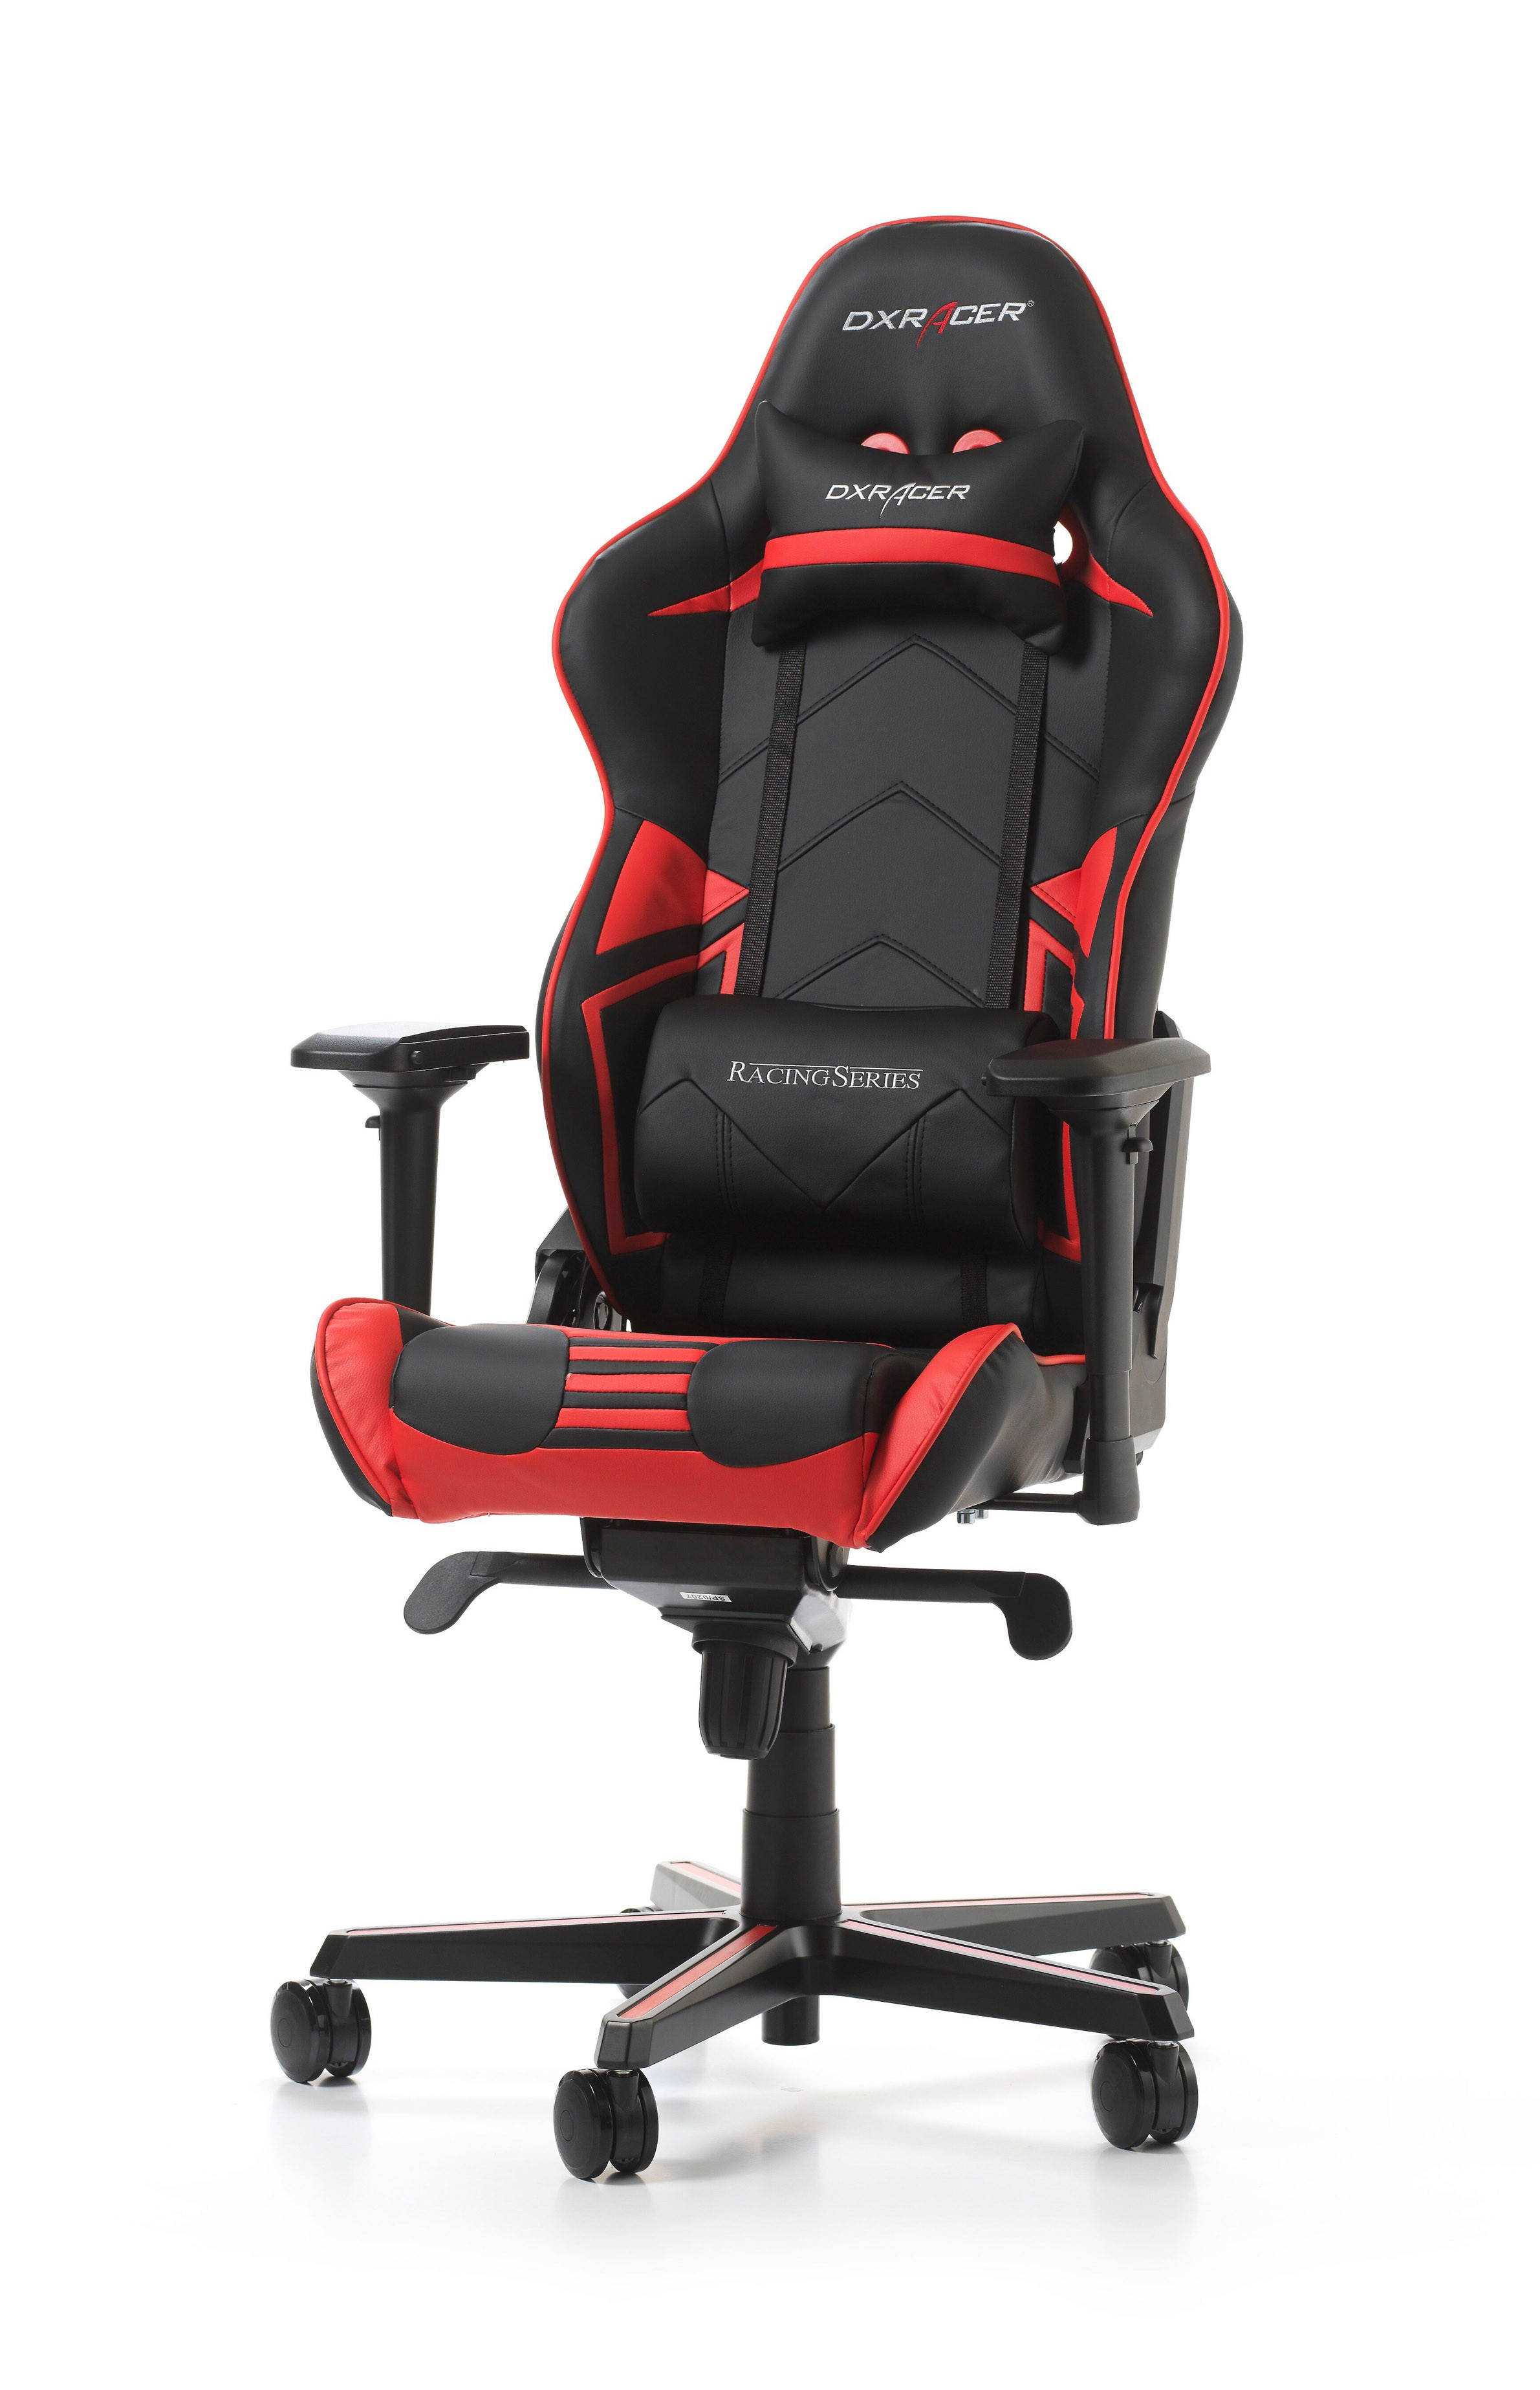 DXRACER RACING PRO SERIES R131-NR RED GAMING CHAIR